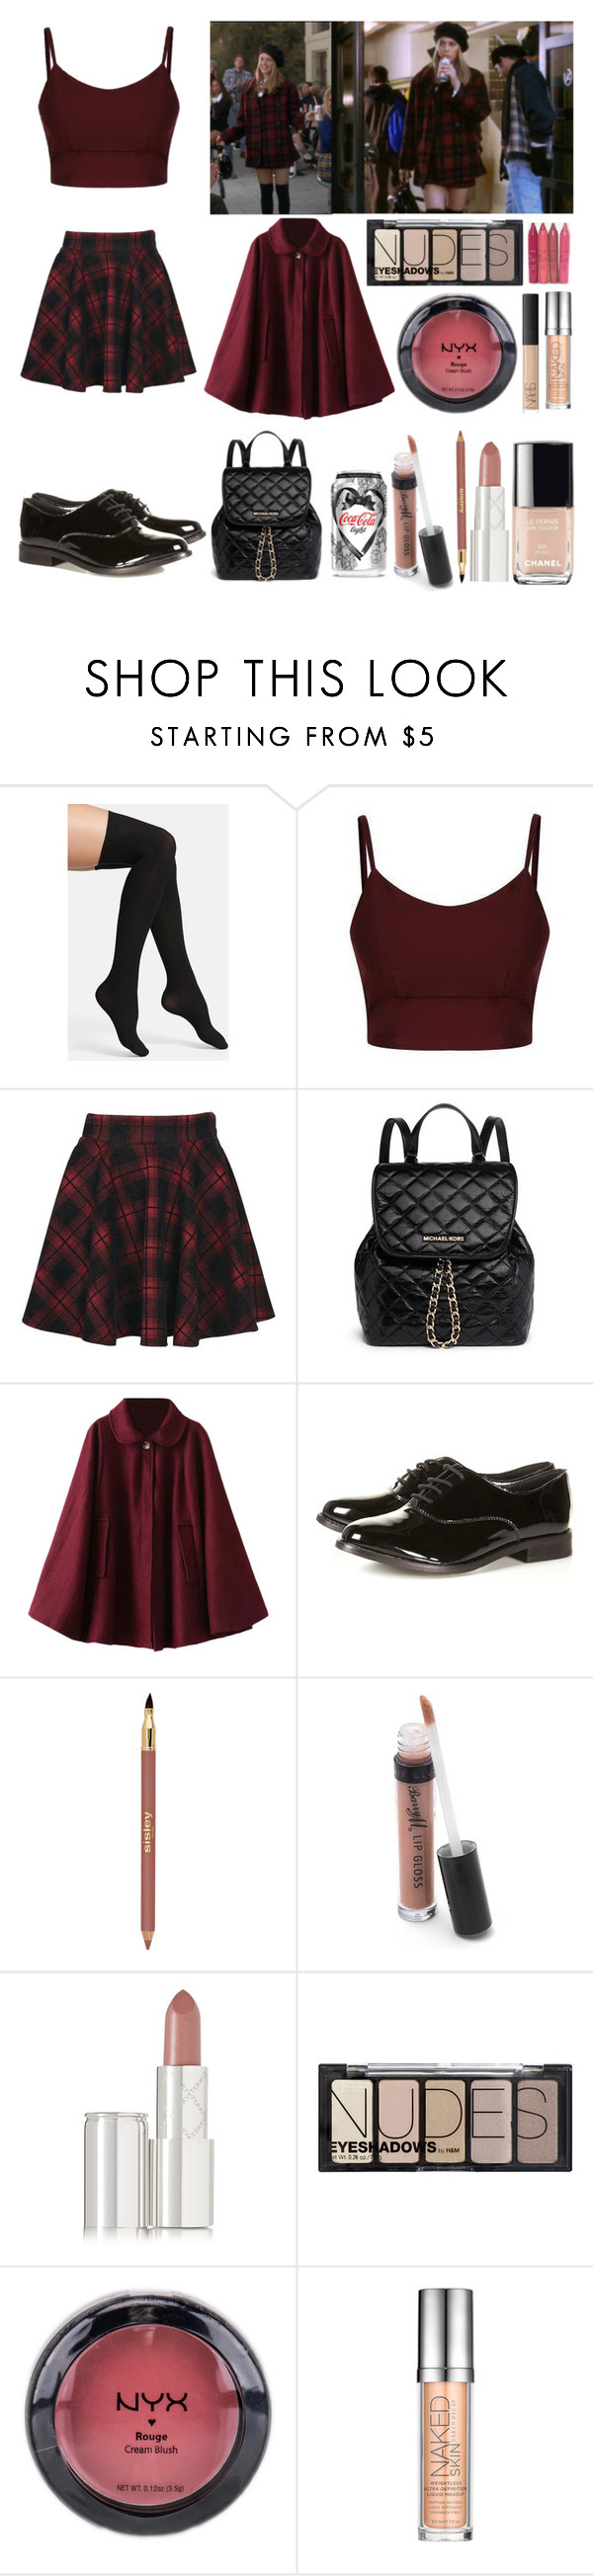 """""""Cher ♥"""" by shanelle-khl ❤ liked on Polyvore featuring Commando, Boohoo, MICHAEL Michael Kors, Chantal Thomass, Sisley Paris, Barry M, By Terry, H&M, NYX and Urban Decay"""